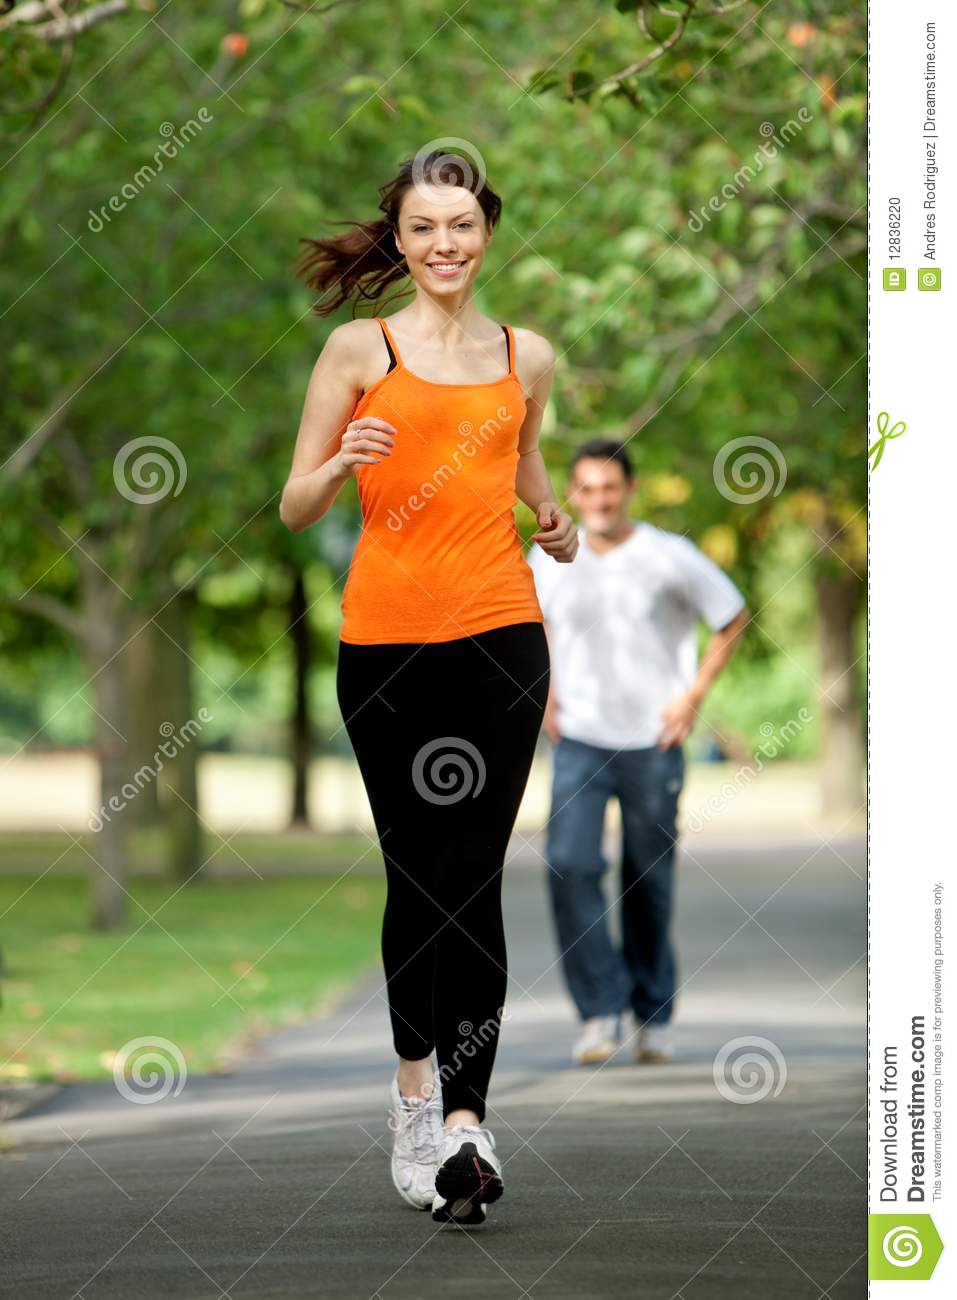 Woman Jogging Outdoors Stock Photo Image Of Jogging